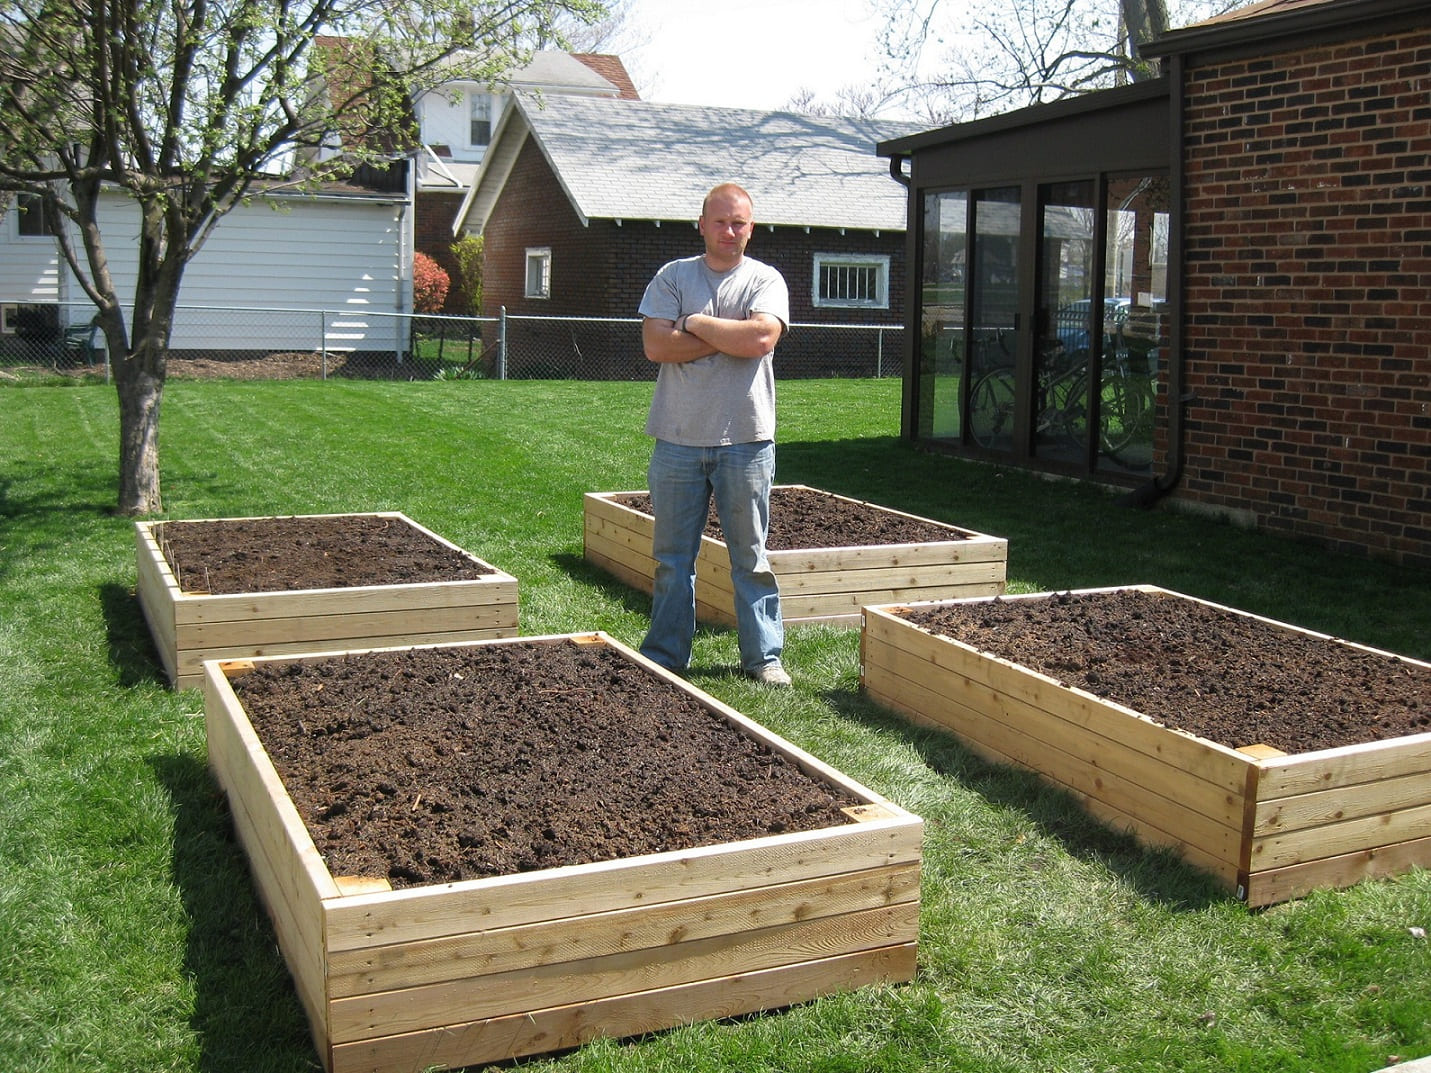 Simphome.com pallet vegetable garden box ideas for design landscaping and intended for box garden ideas Image Source ottan.me